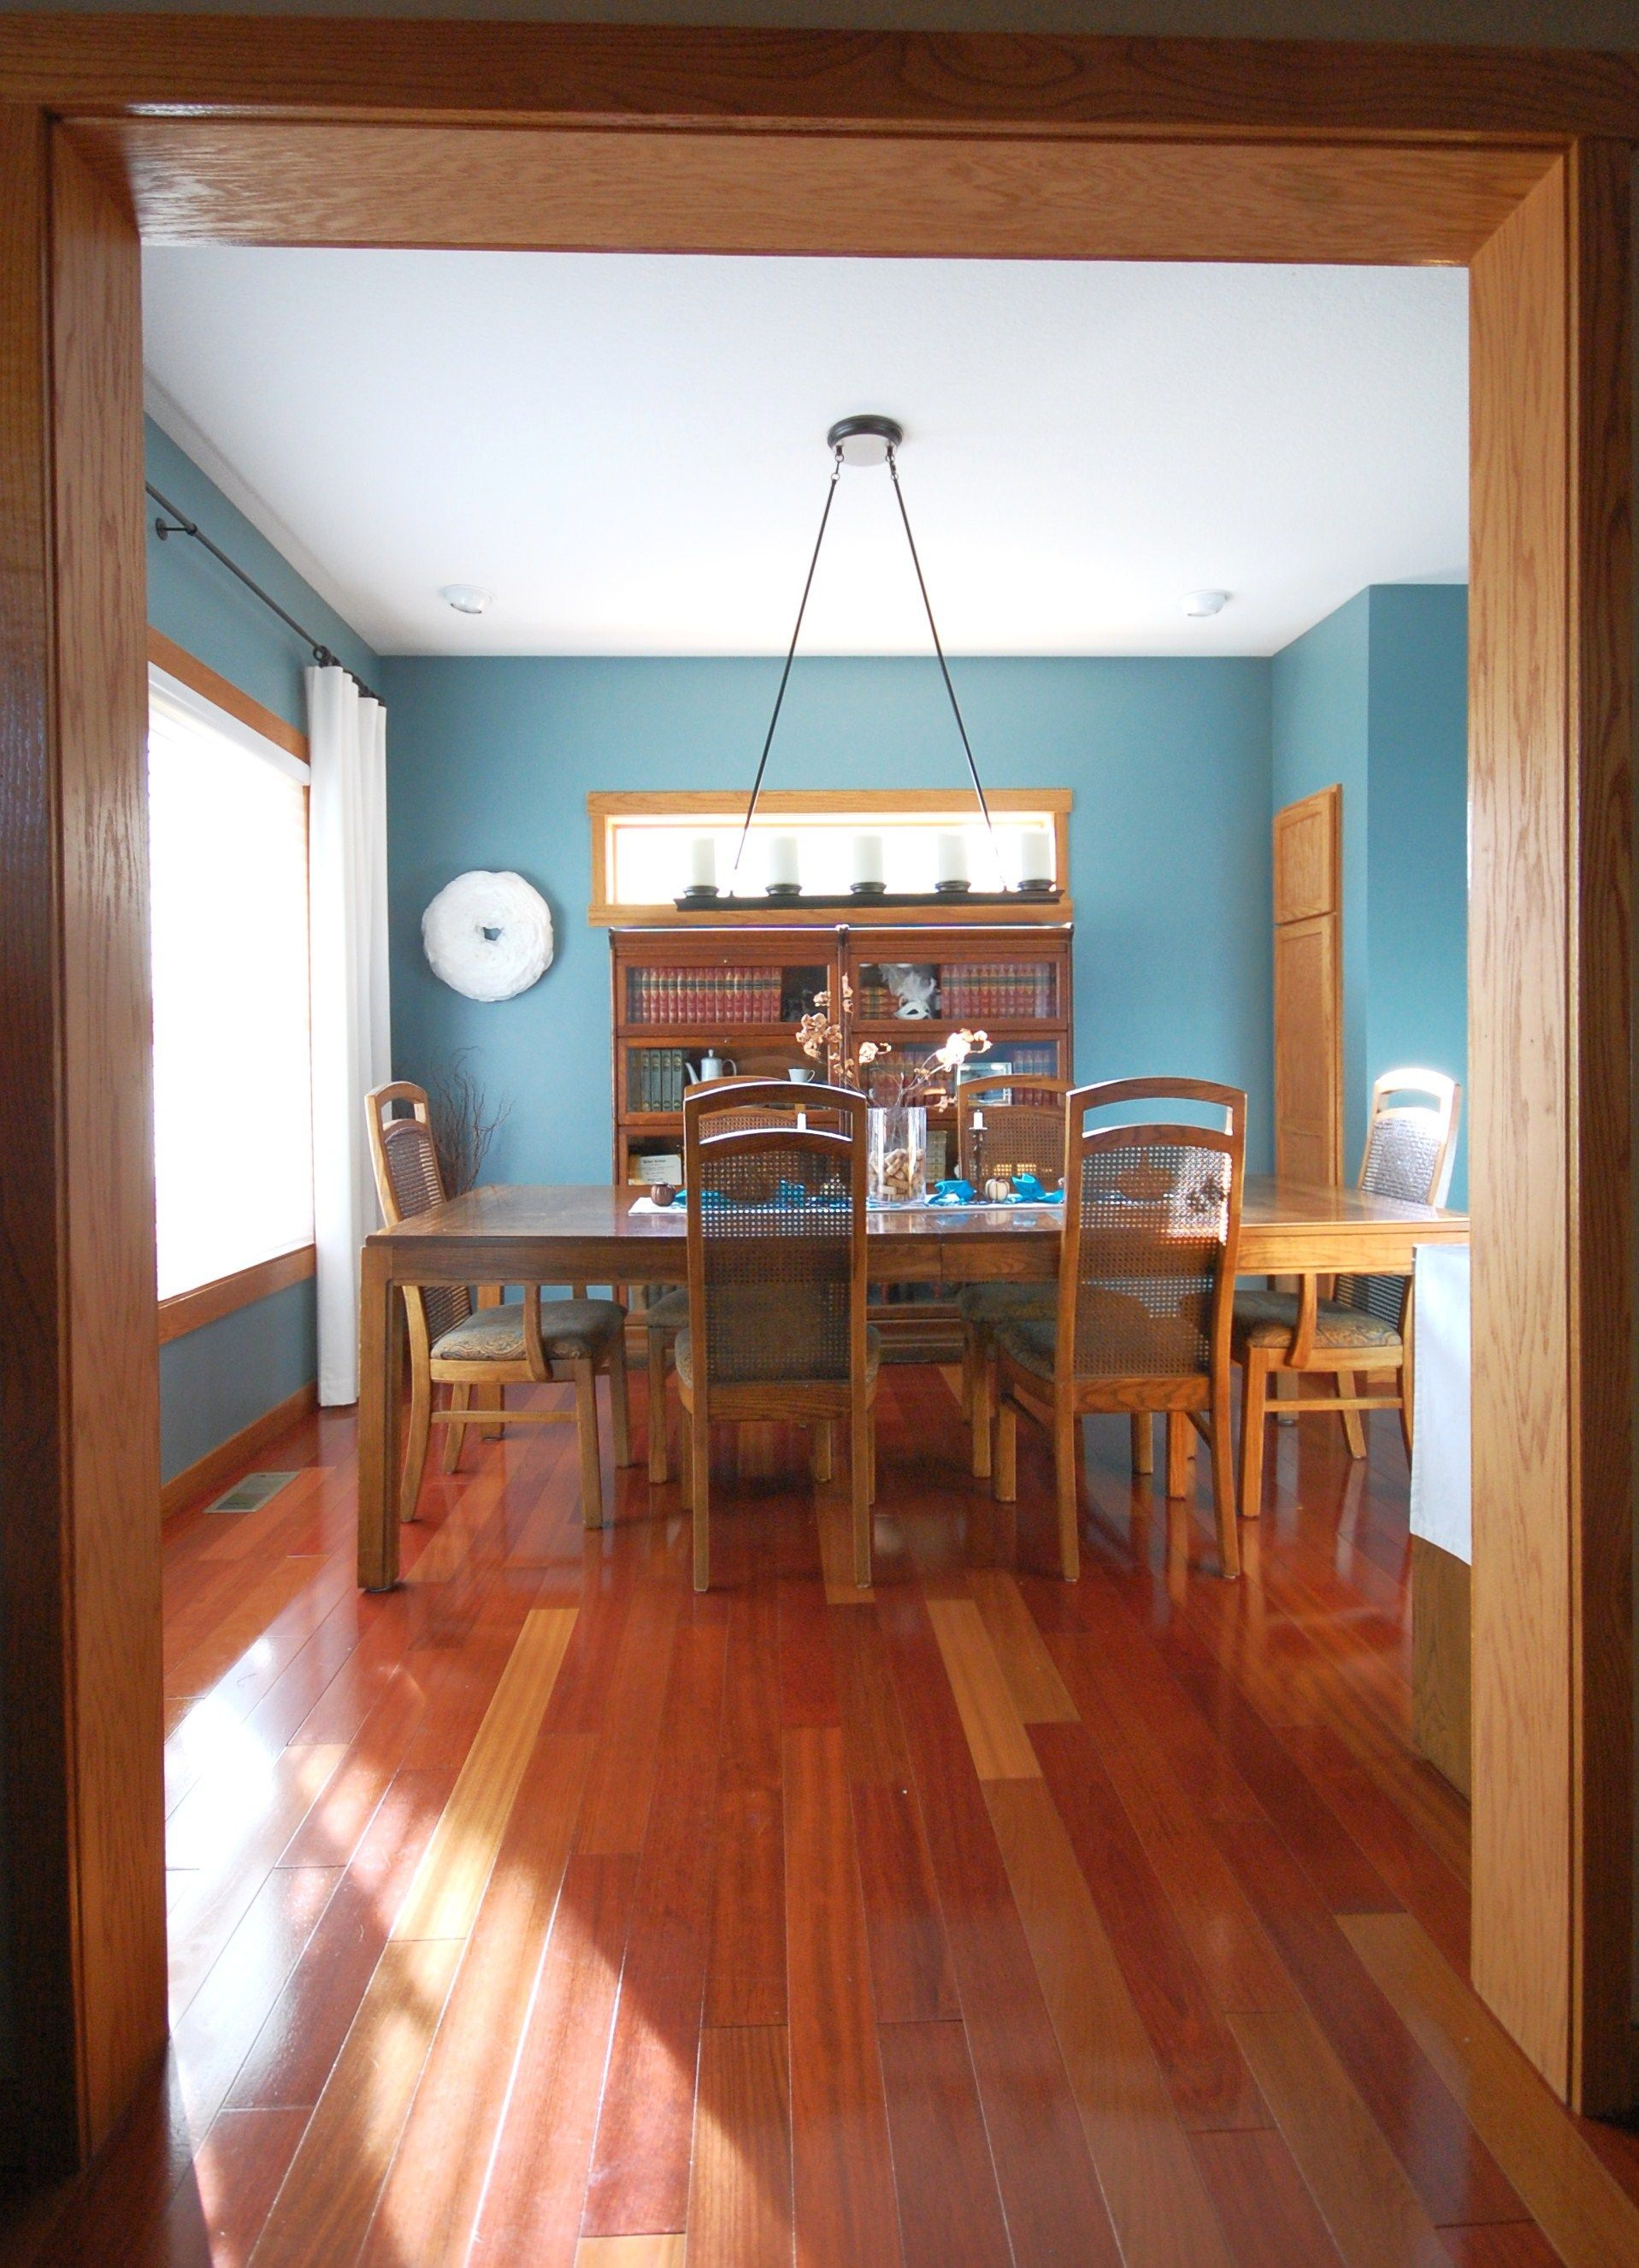 My Dining Room With Oak Trim Paint Color Sherwin Williams Moody Blue Really Like This B Dining Room Colors Paint Colors For Living Room Living Room Colors